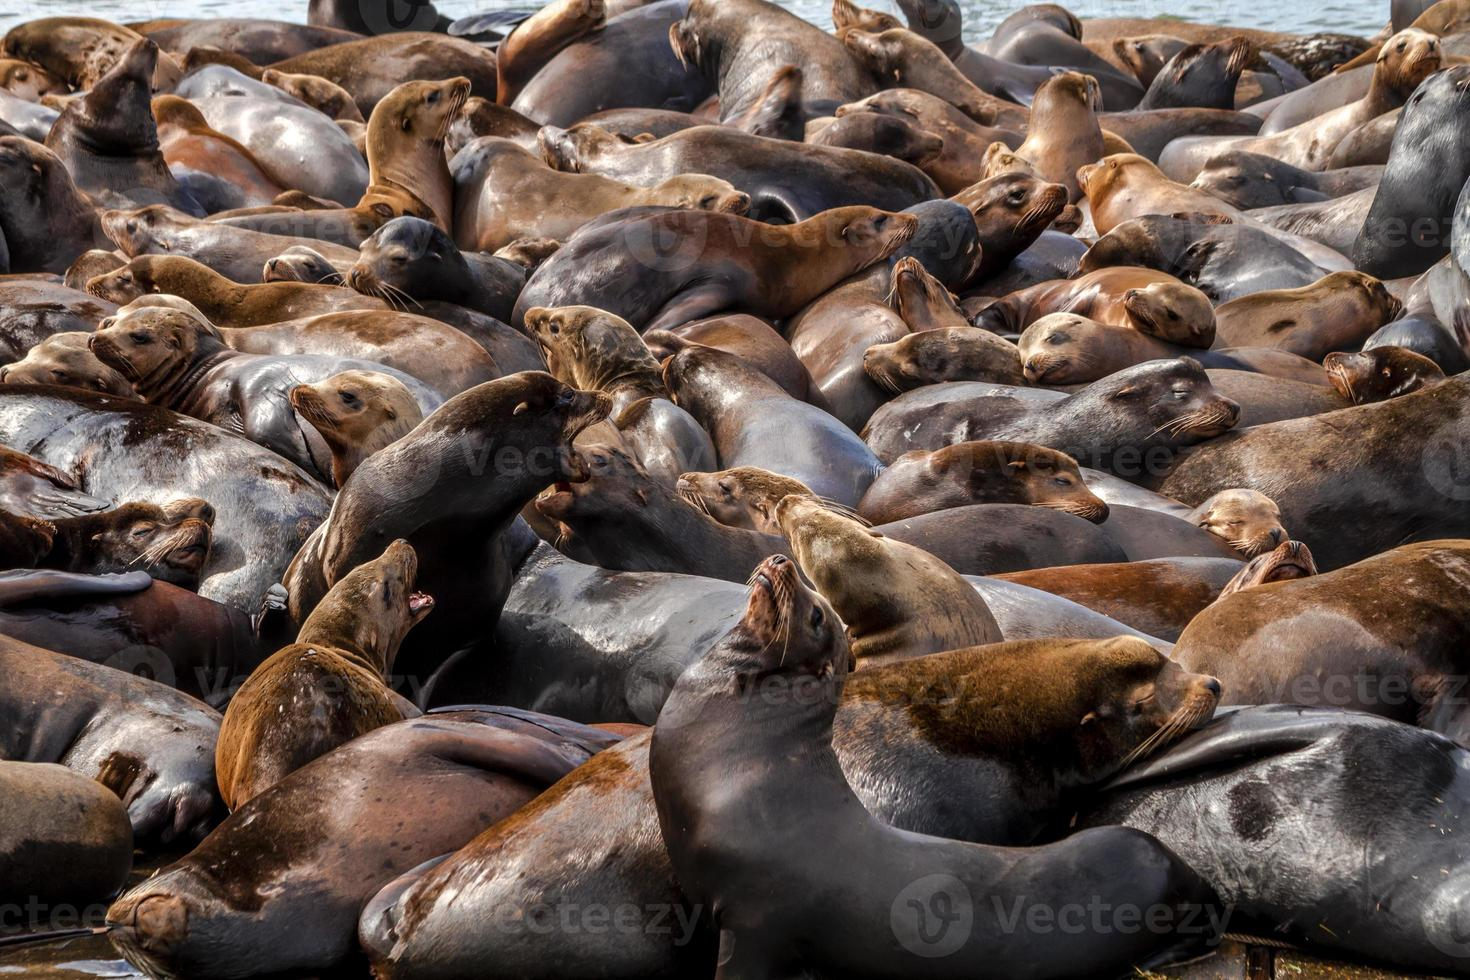 Pacific Northwest Sea Lions and Seals photo